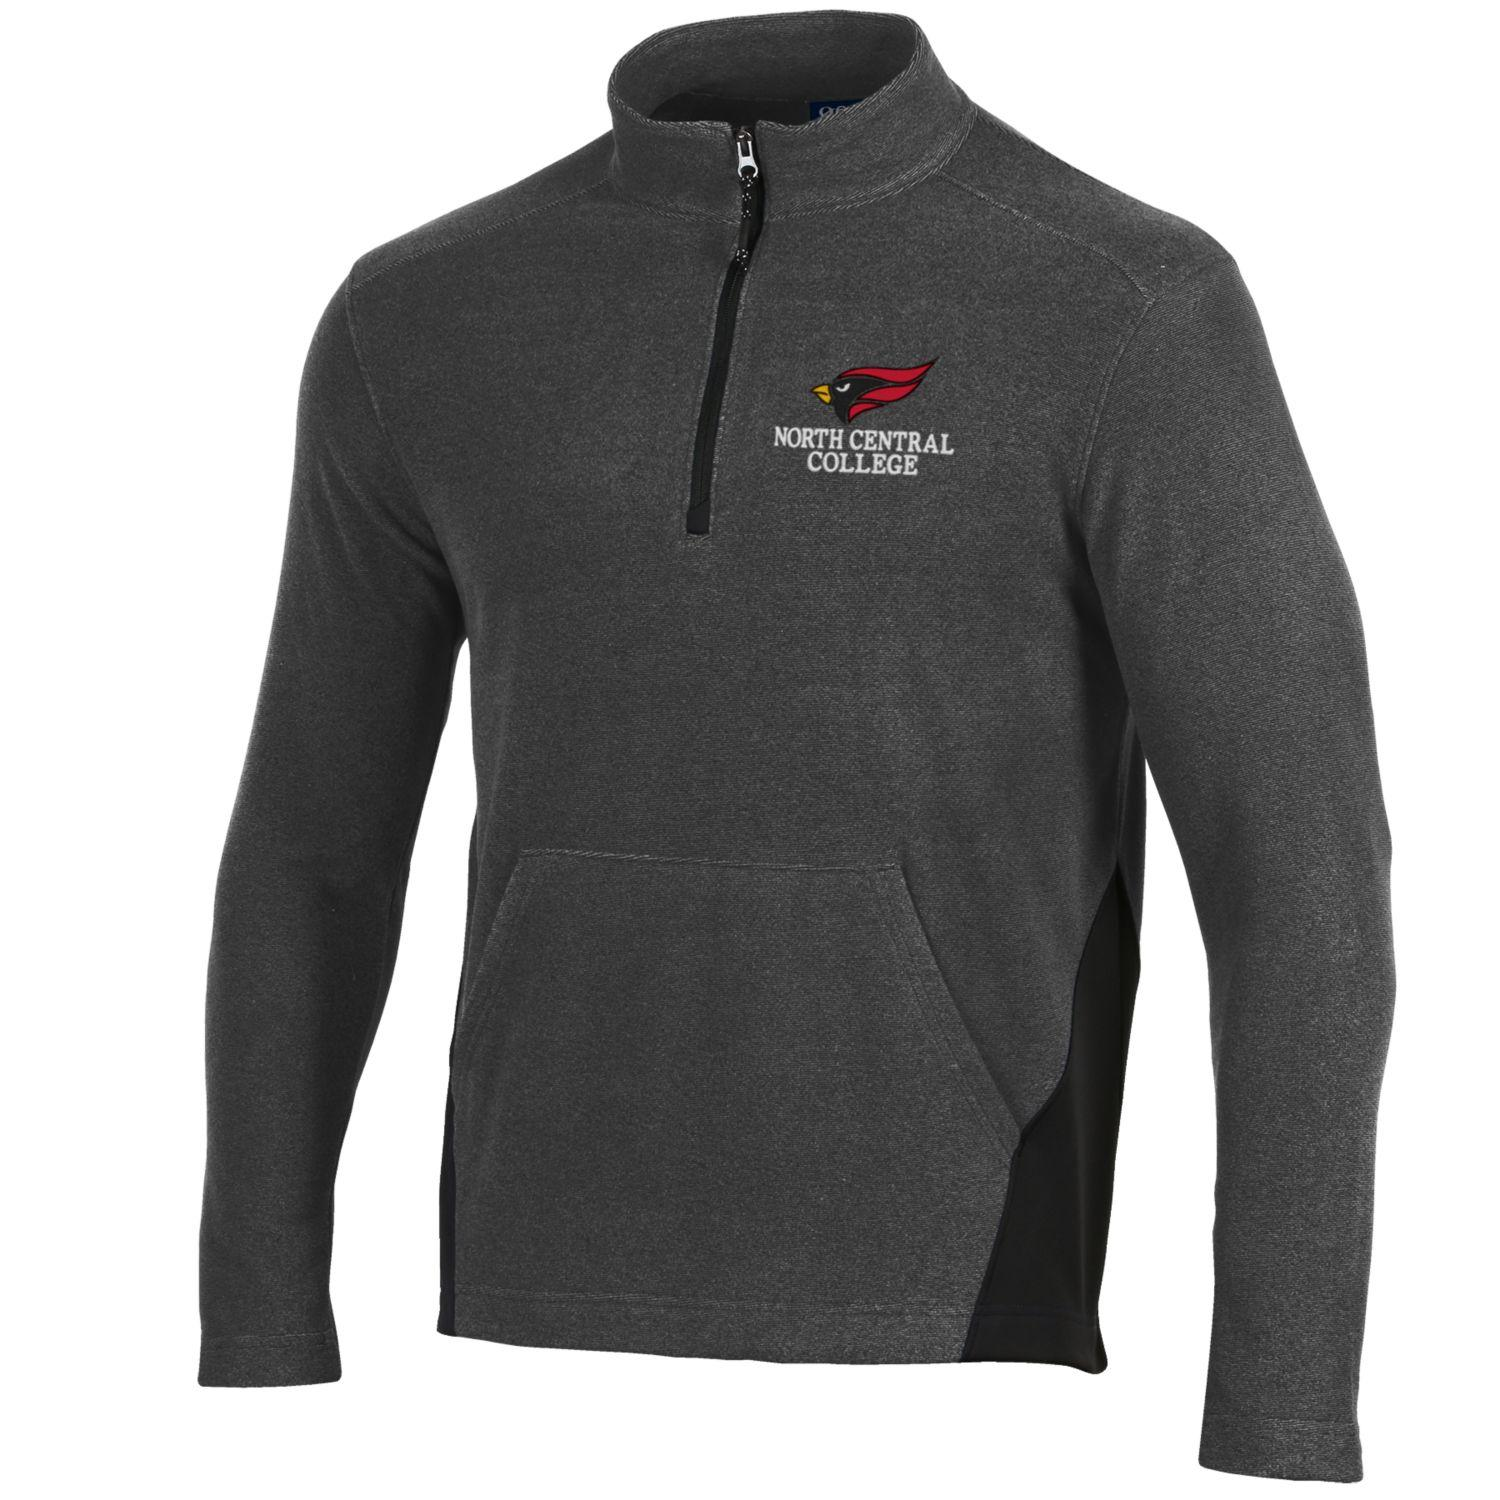 Image for the Fair Weather 1/4 Zip Charcoal product